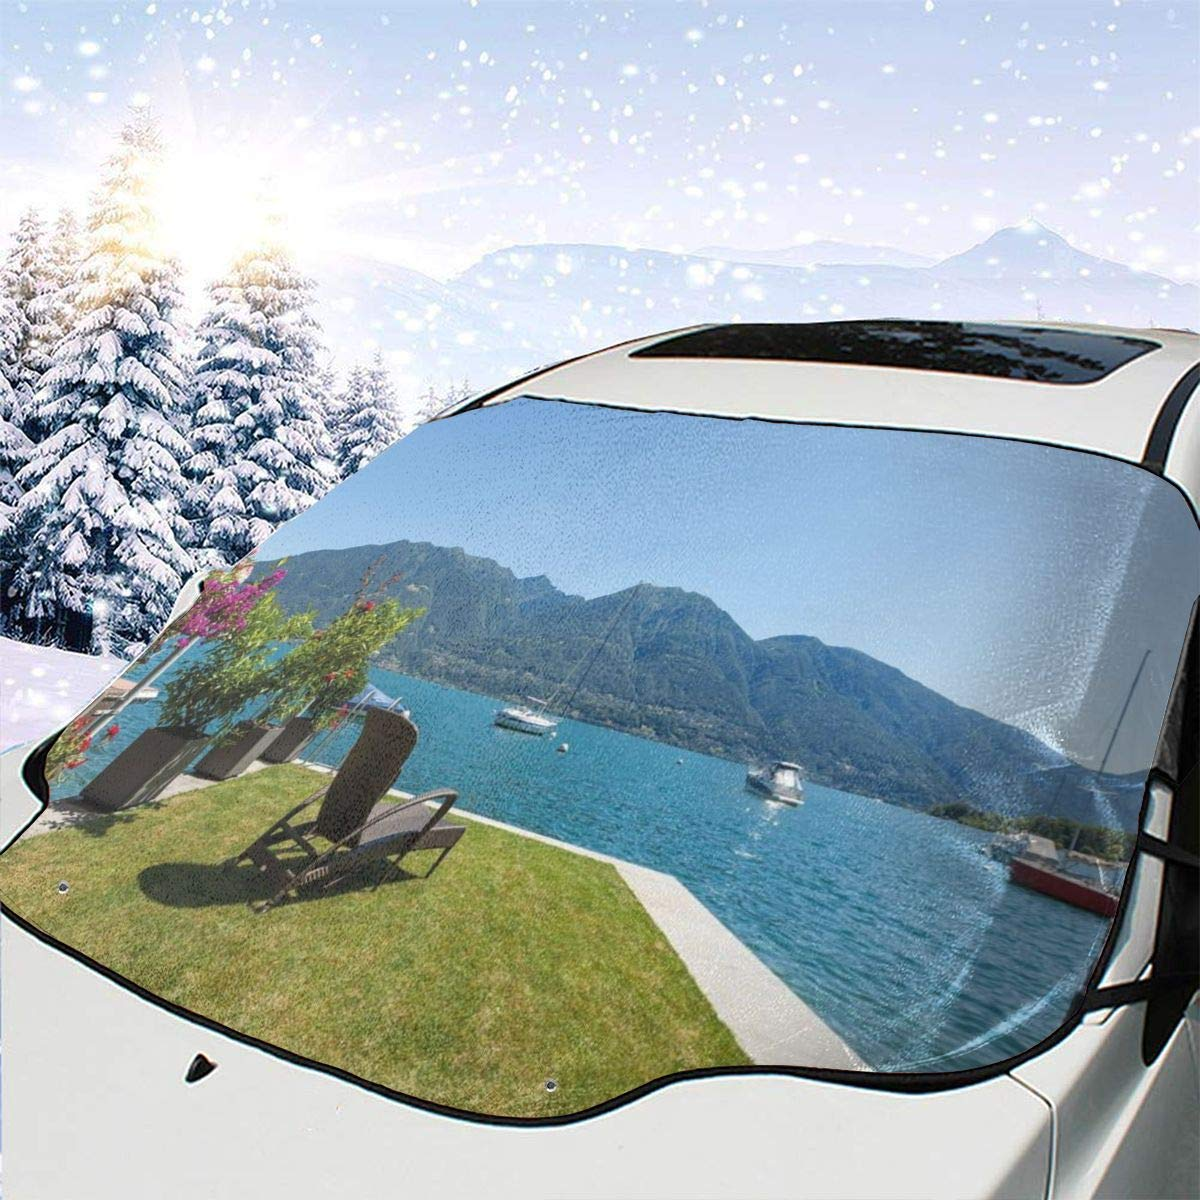 Car Front Free Shipping New Window Windshield Snow Cover Patio Terrace Fees free Fl Outdoor